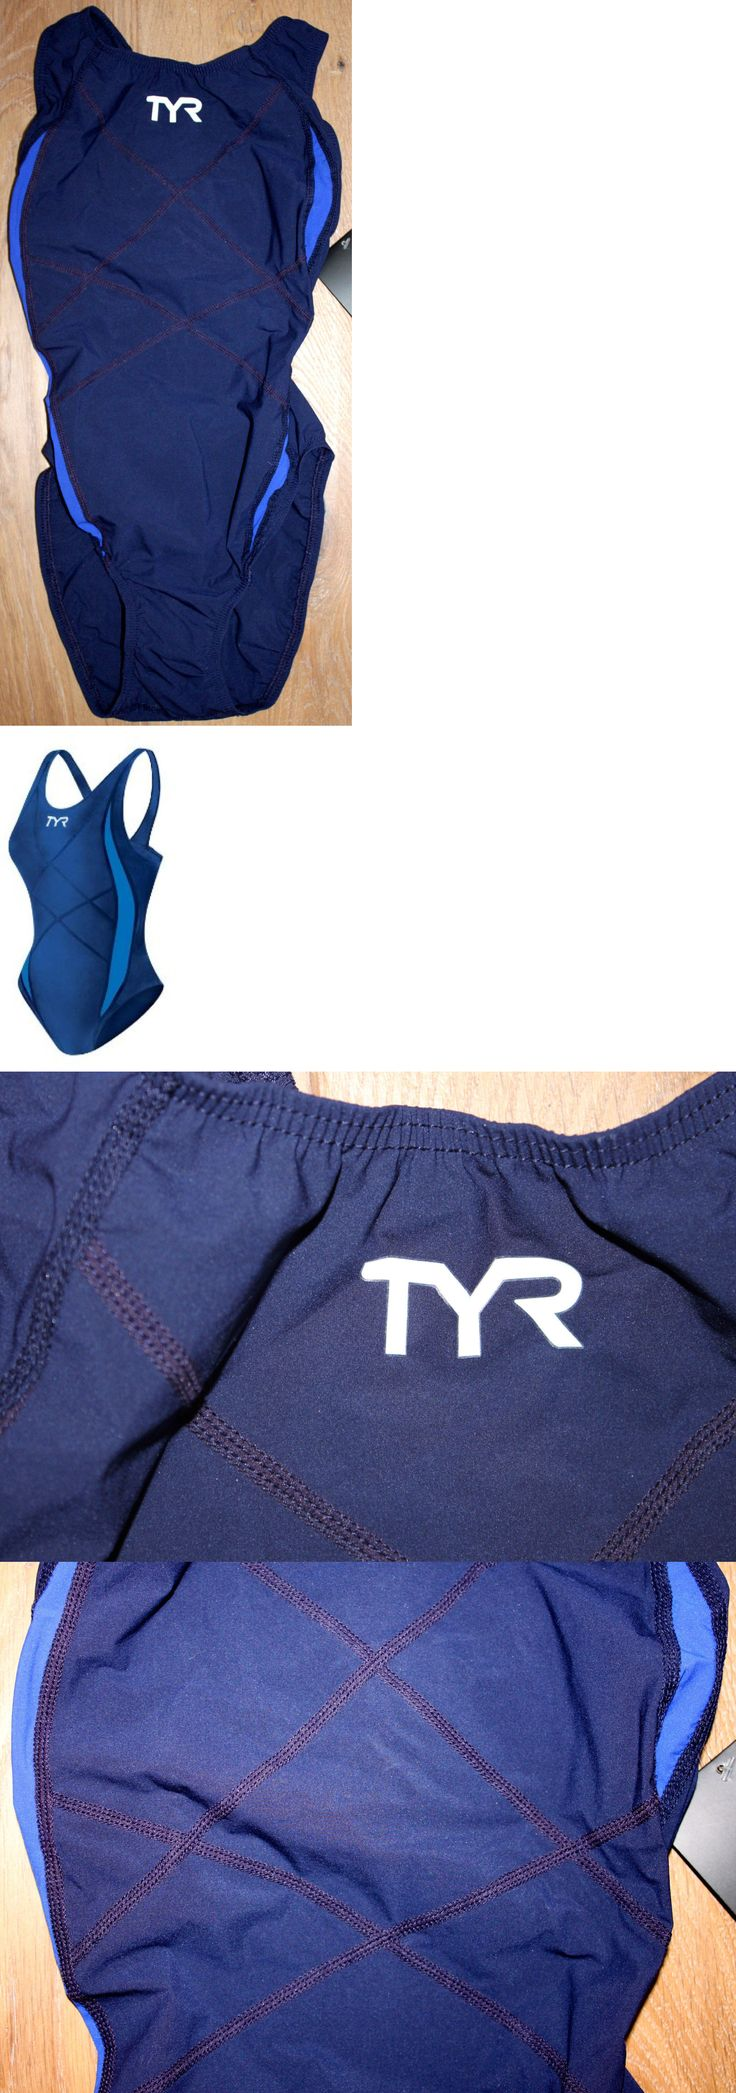 Triathlon 2918: New Tyr Womens Tracer Light Aeroback 1 Piece Tri Swimsuit - Blue - Usa Made - 32 -> BUY IT NOW ONLY: $52.2 on eBay!